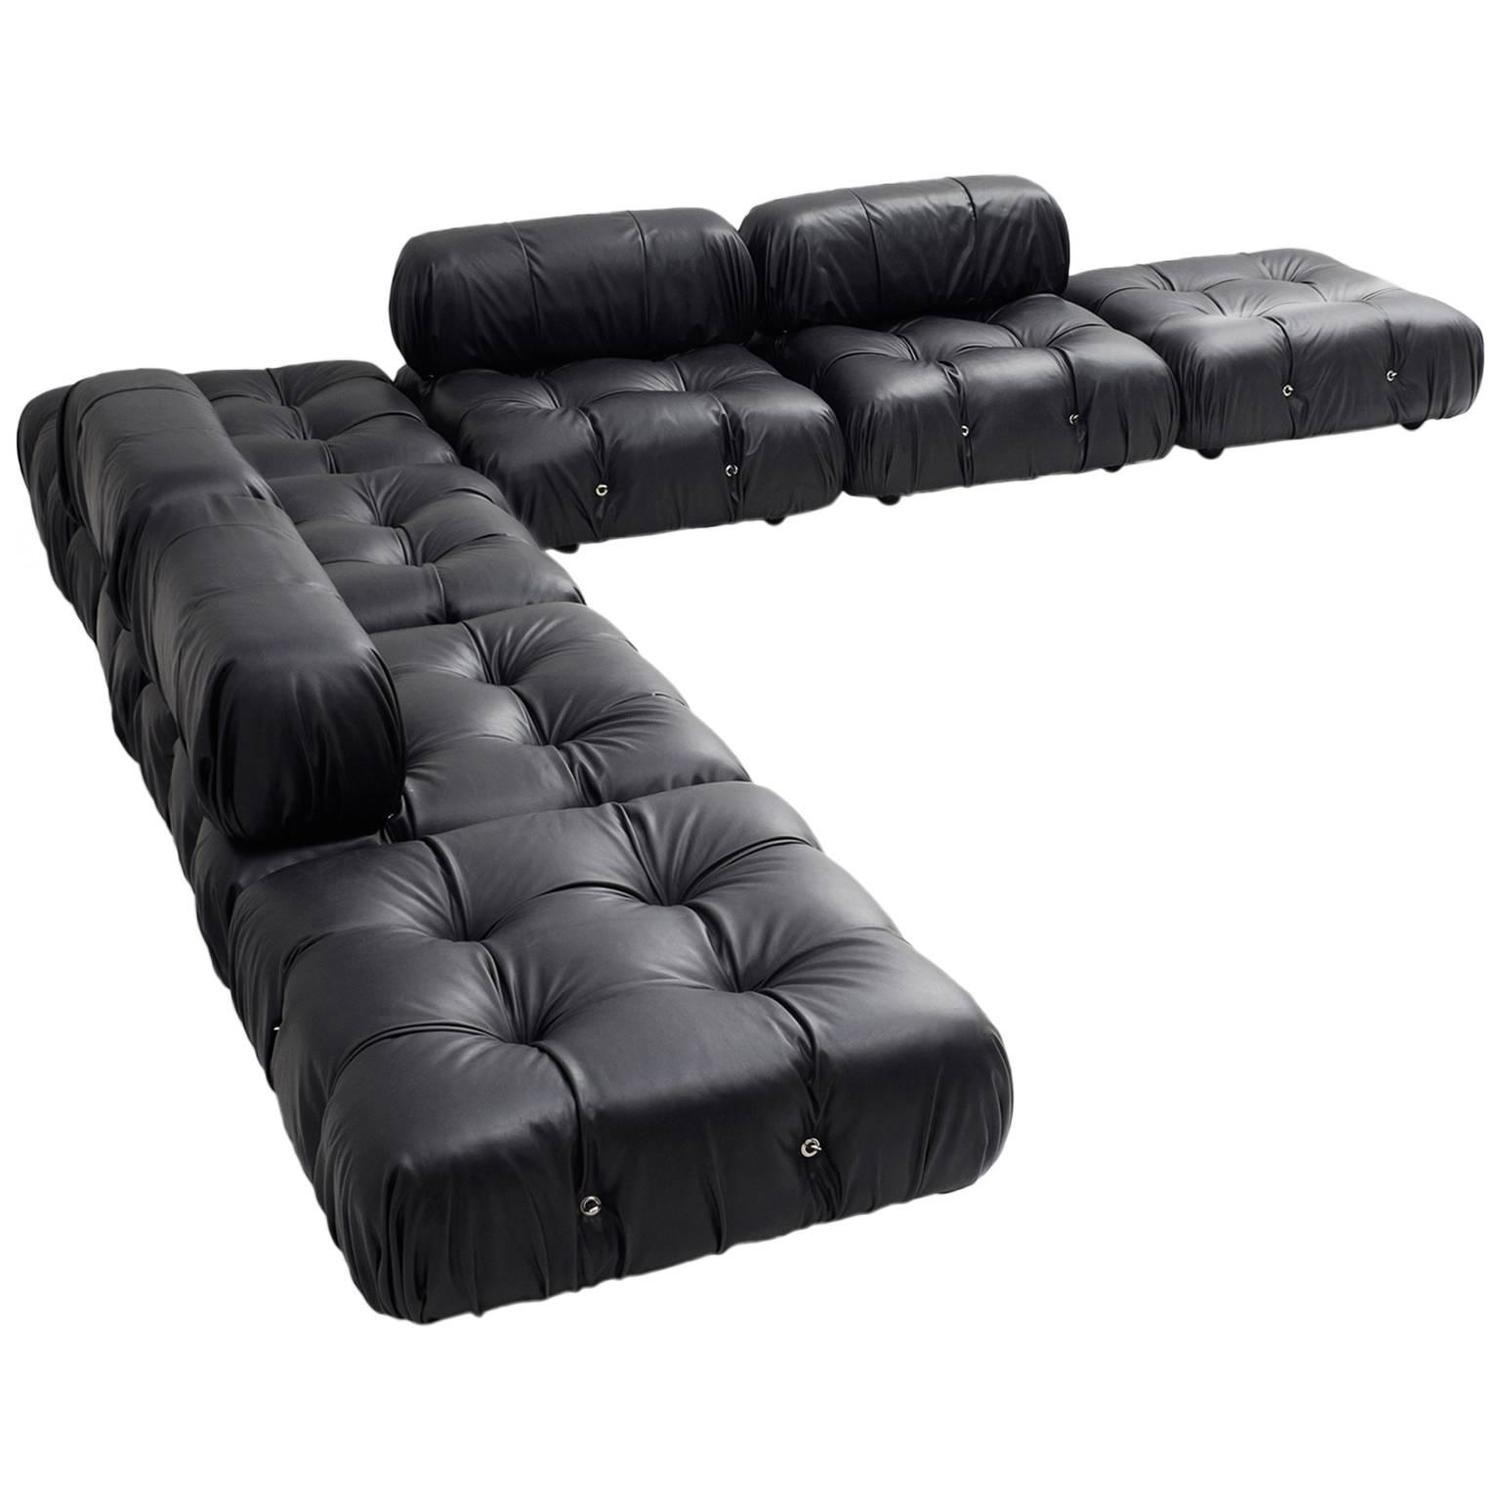 Mario Bellini Modular Sofa 'camaleonda' At 1Stdibs For Bellini Sofas (View 6 of 20)